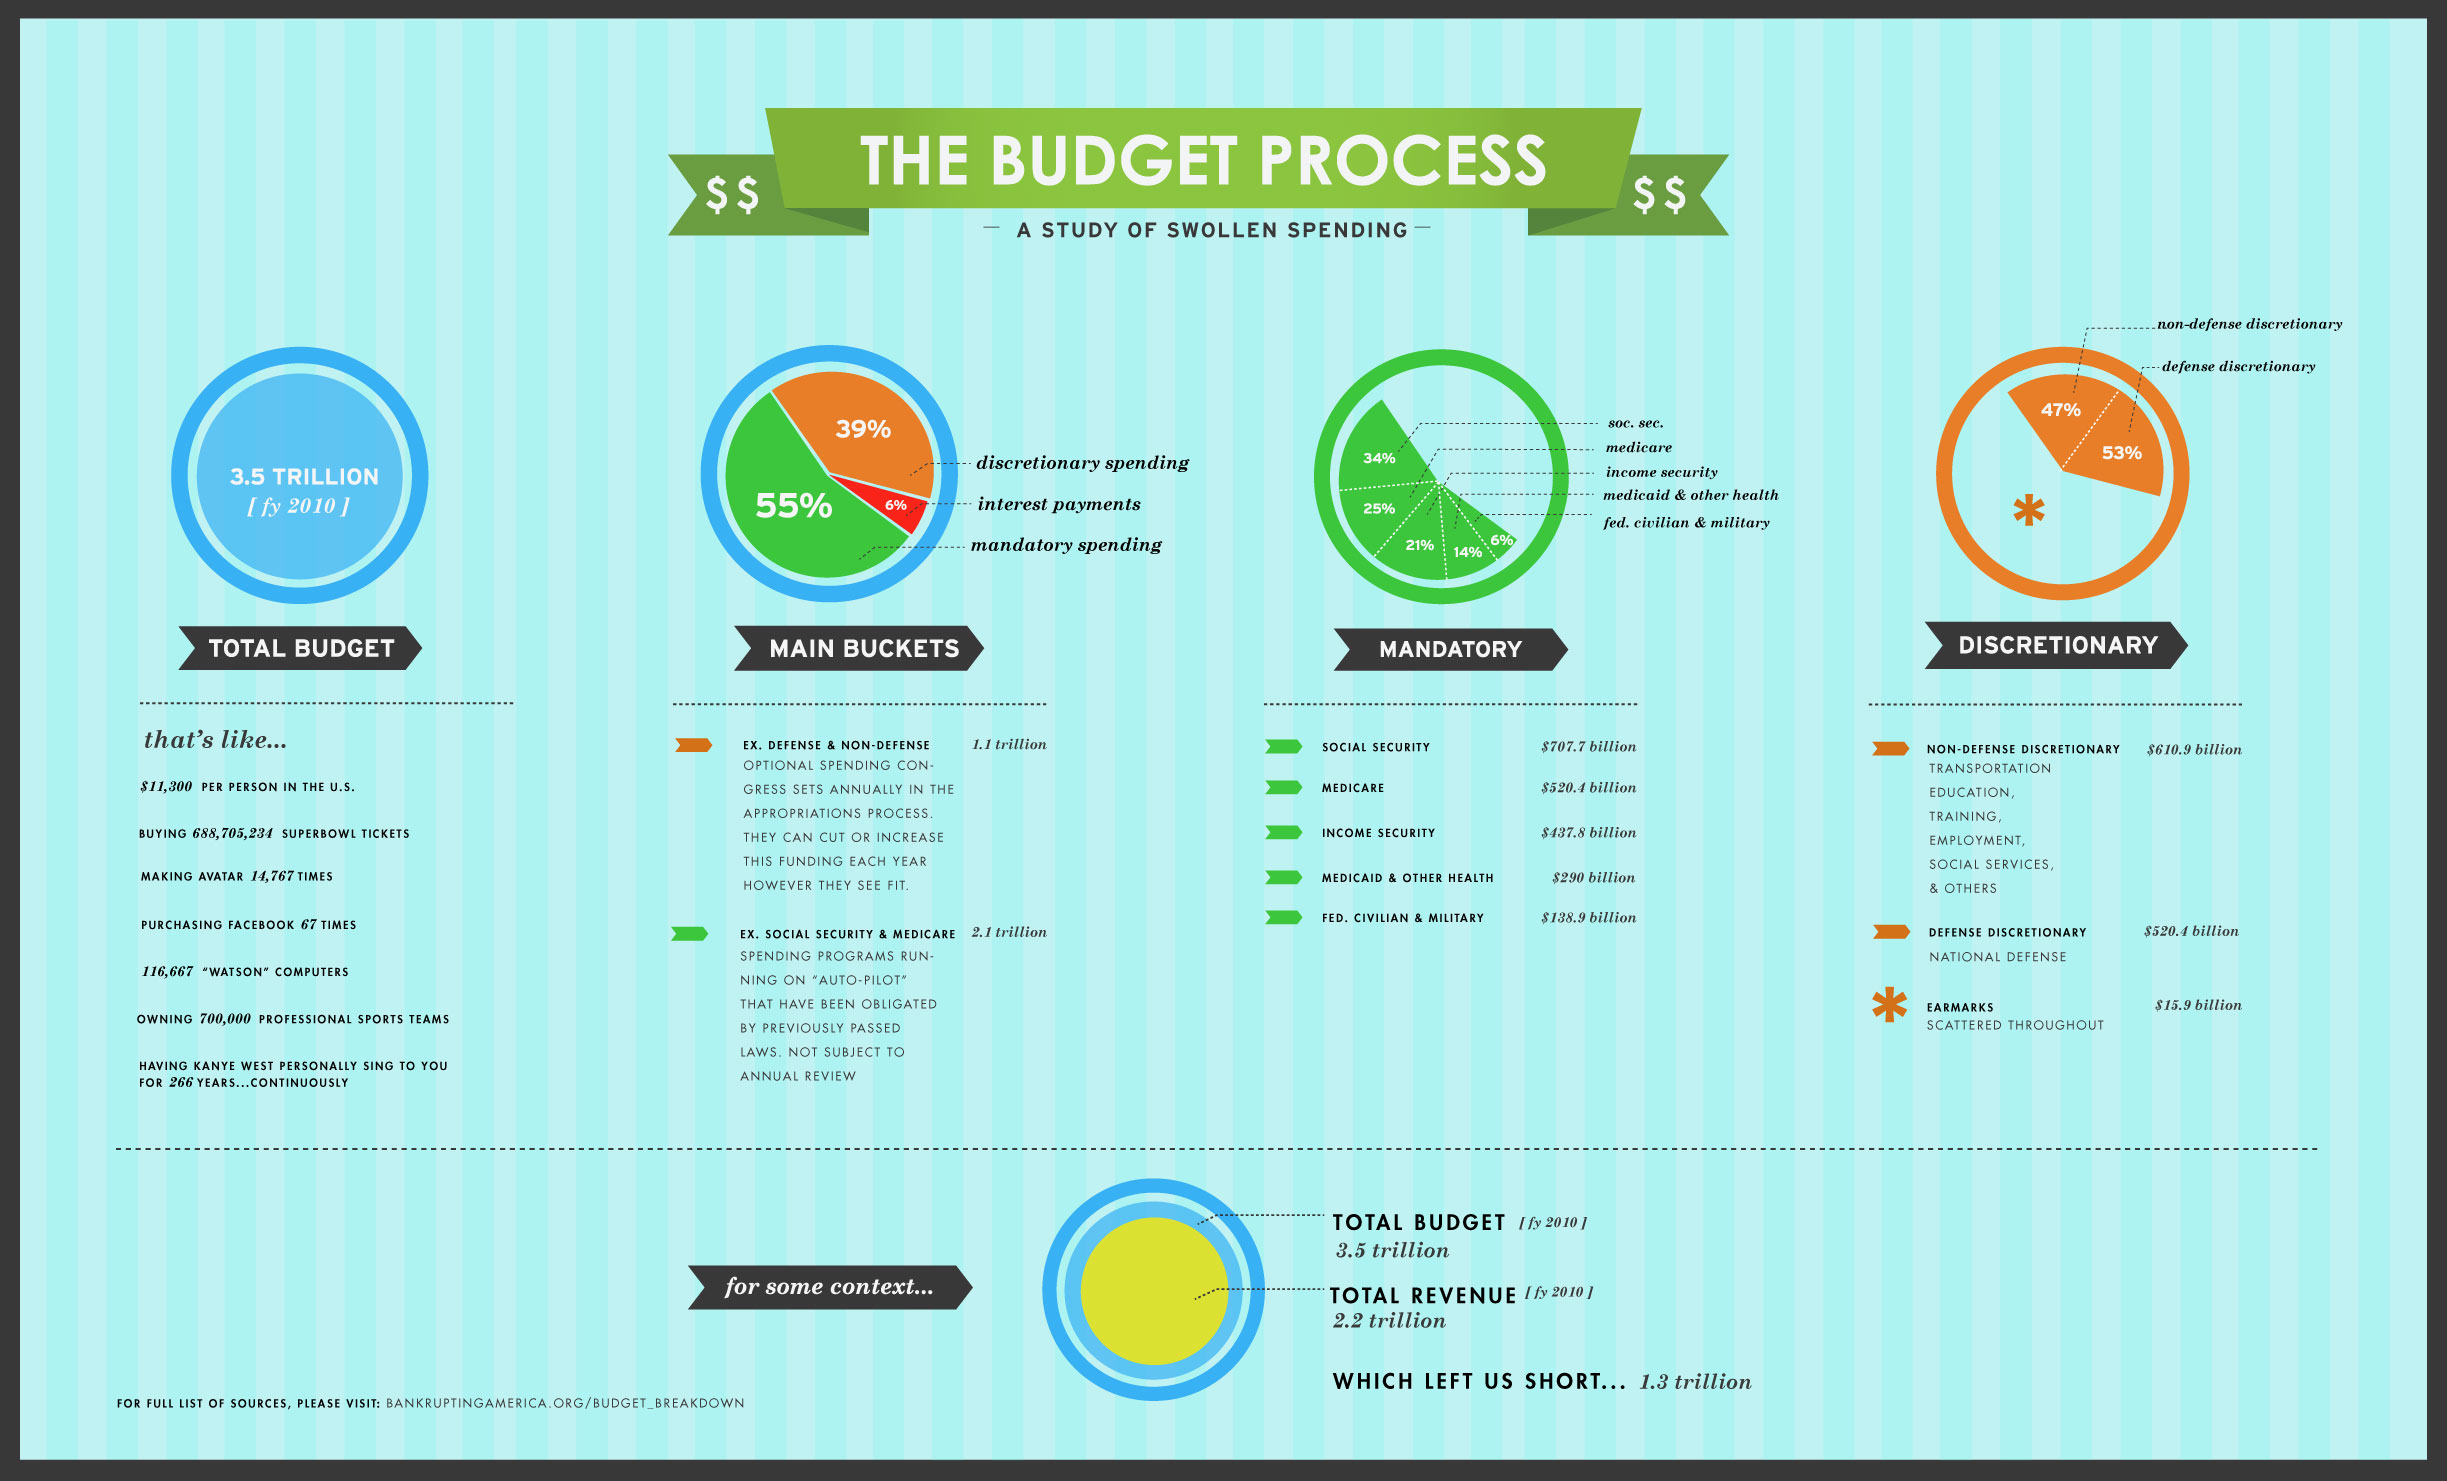 The Budget Process Infographic Infographic List